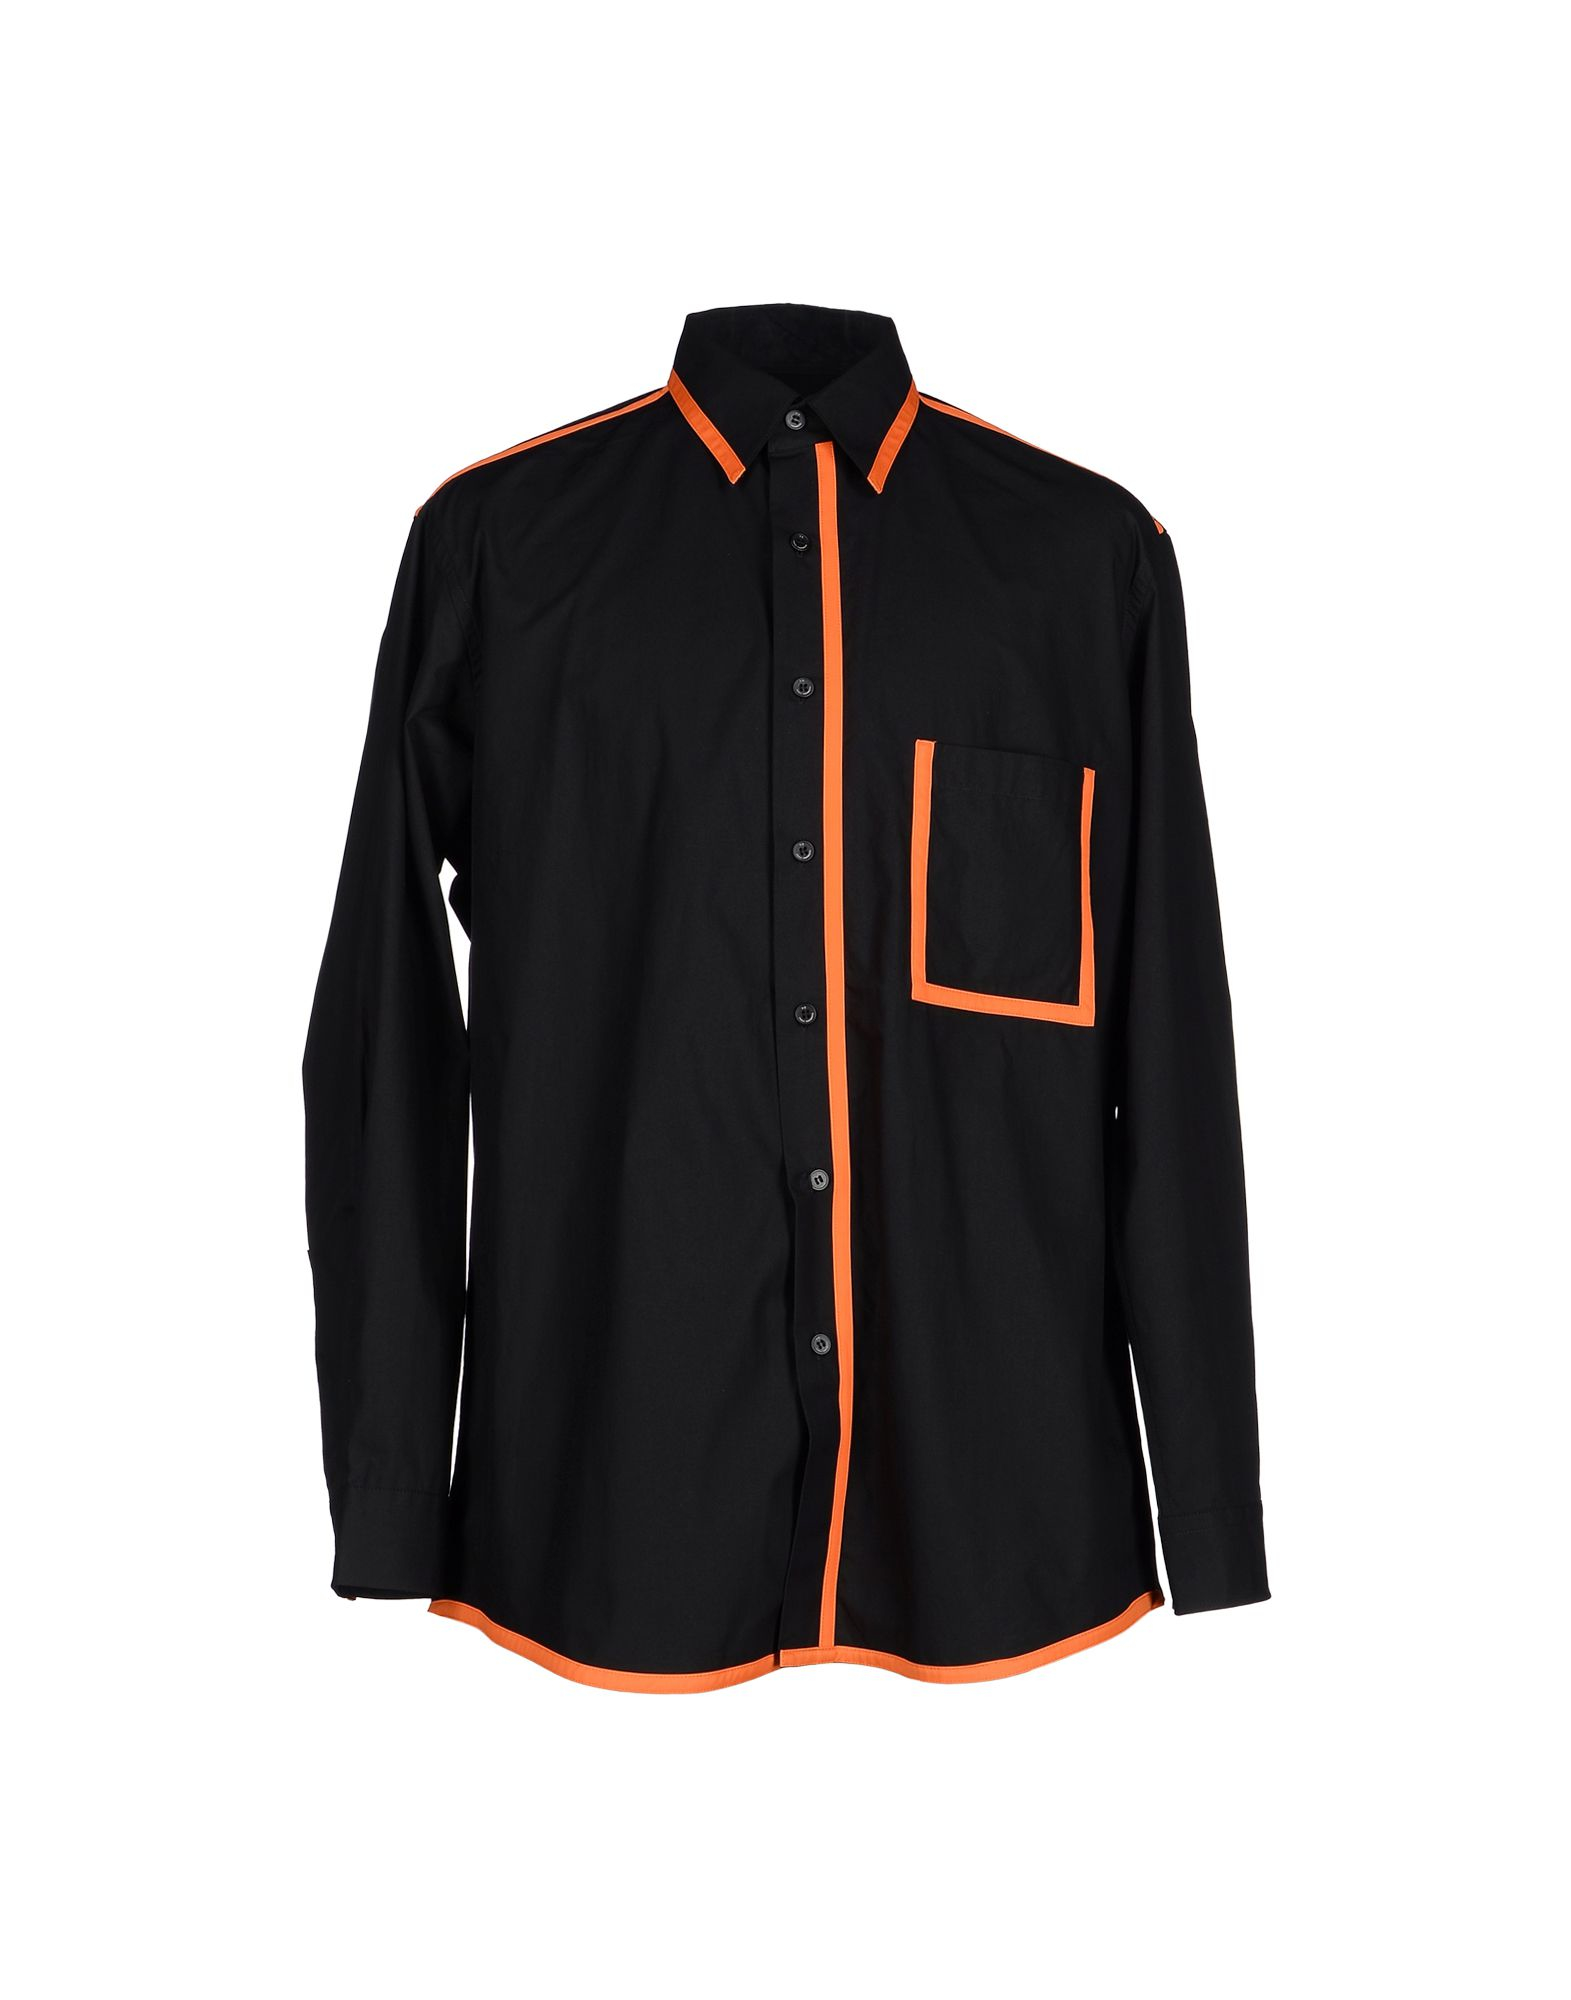 rugby black single men The number 8 rugby shirt is the finest jersey you will ever find  specify men's/women's/color:  hoops orange black: hoops pink navy: hoops purple black.